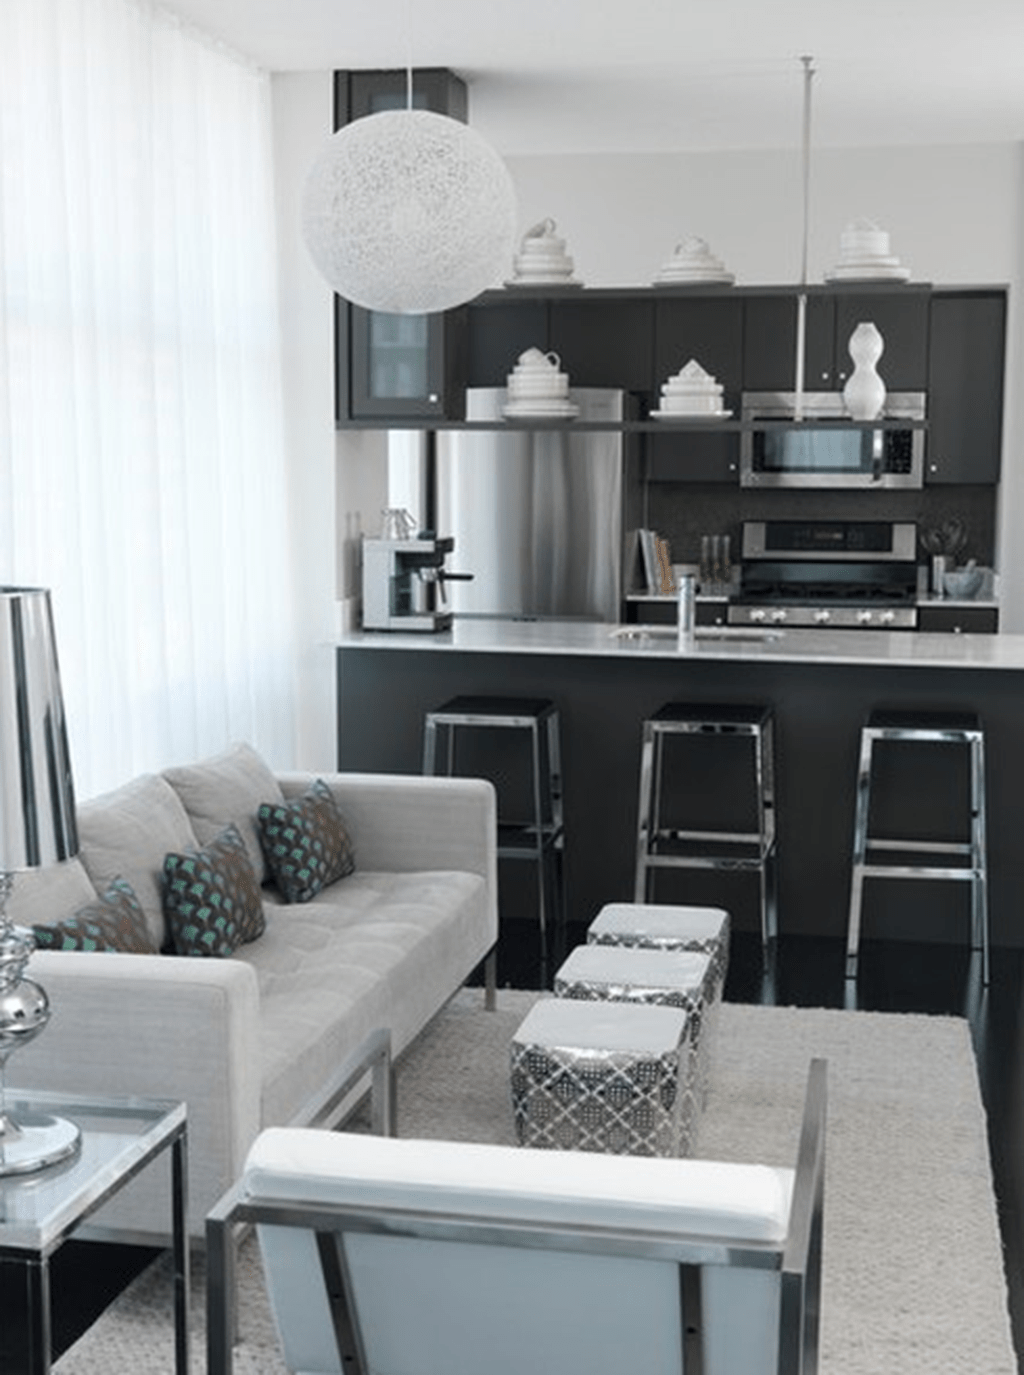 Inspiring And Affordable Decoration Ideas For Small Apartment 42